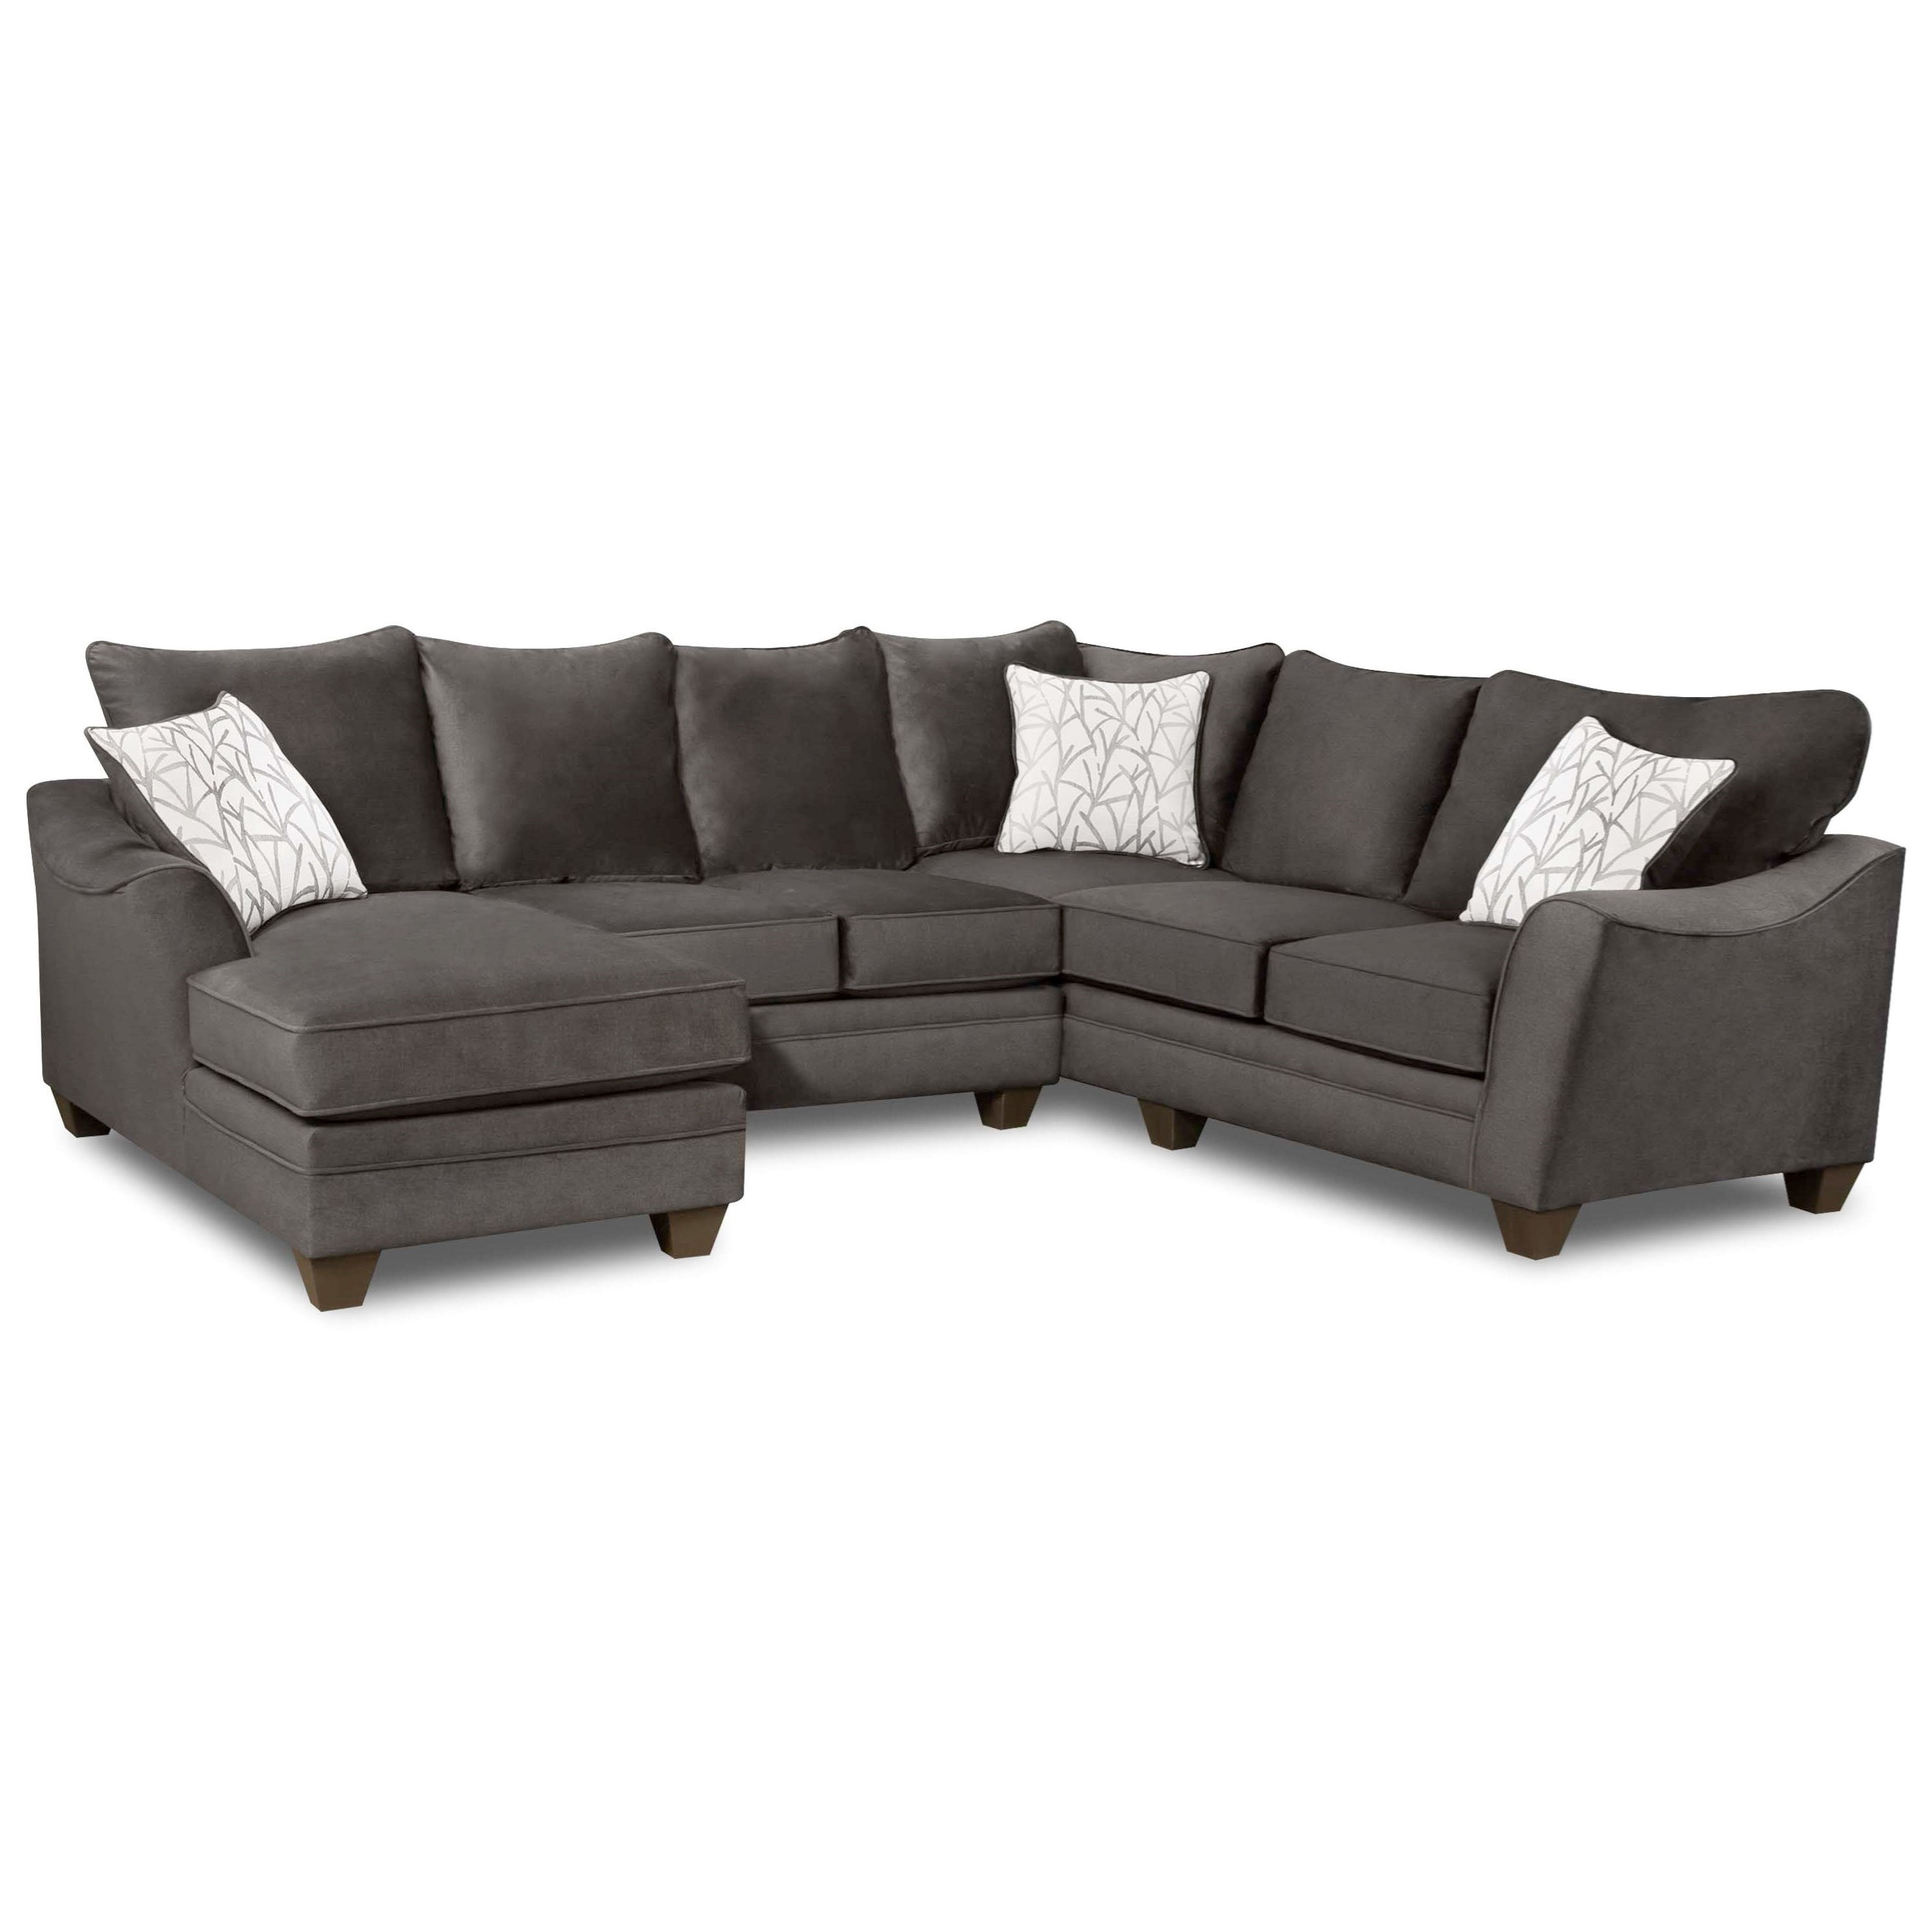 American furniture 3810 sectional sofa with 5 seats for Sectional sofa seats 6